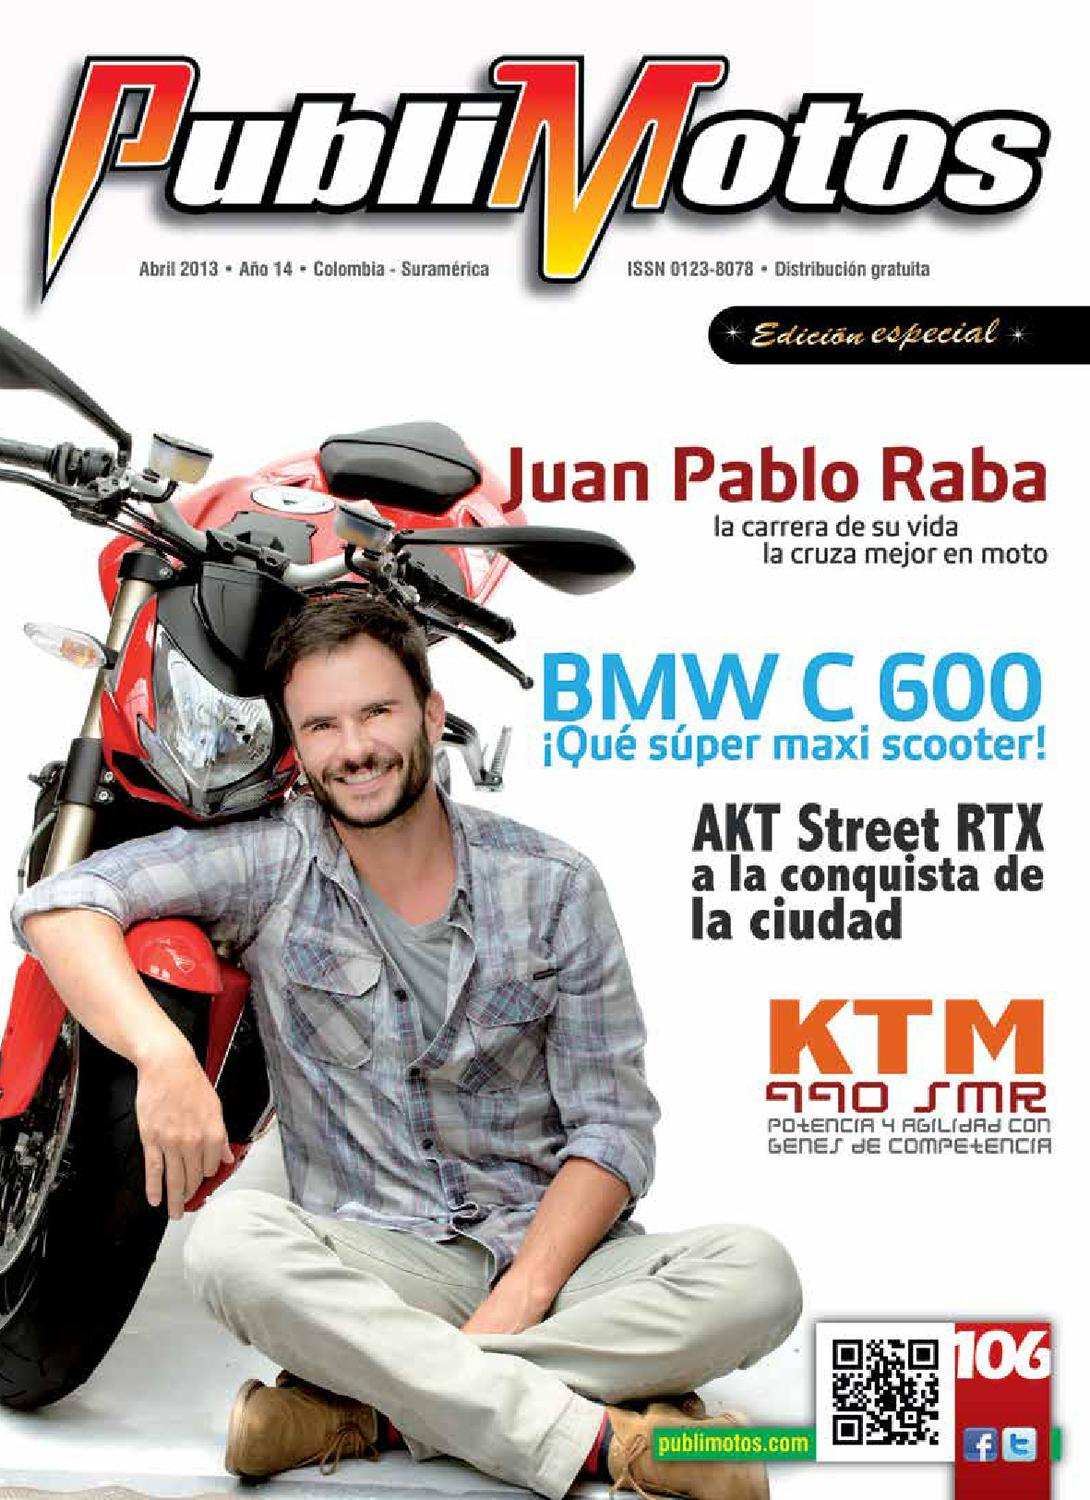 Revista Publimotos 106 by publimotos revista - issuu